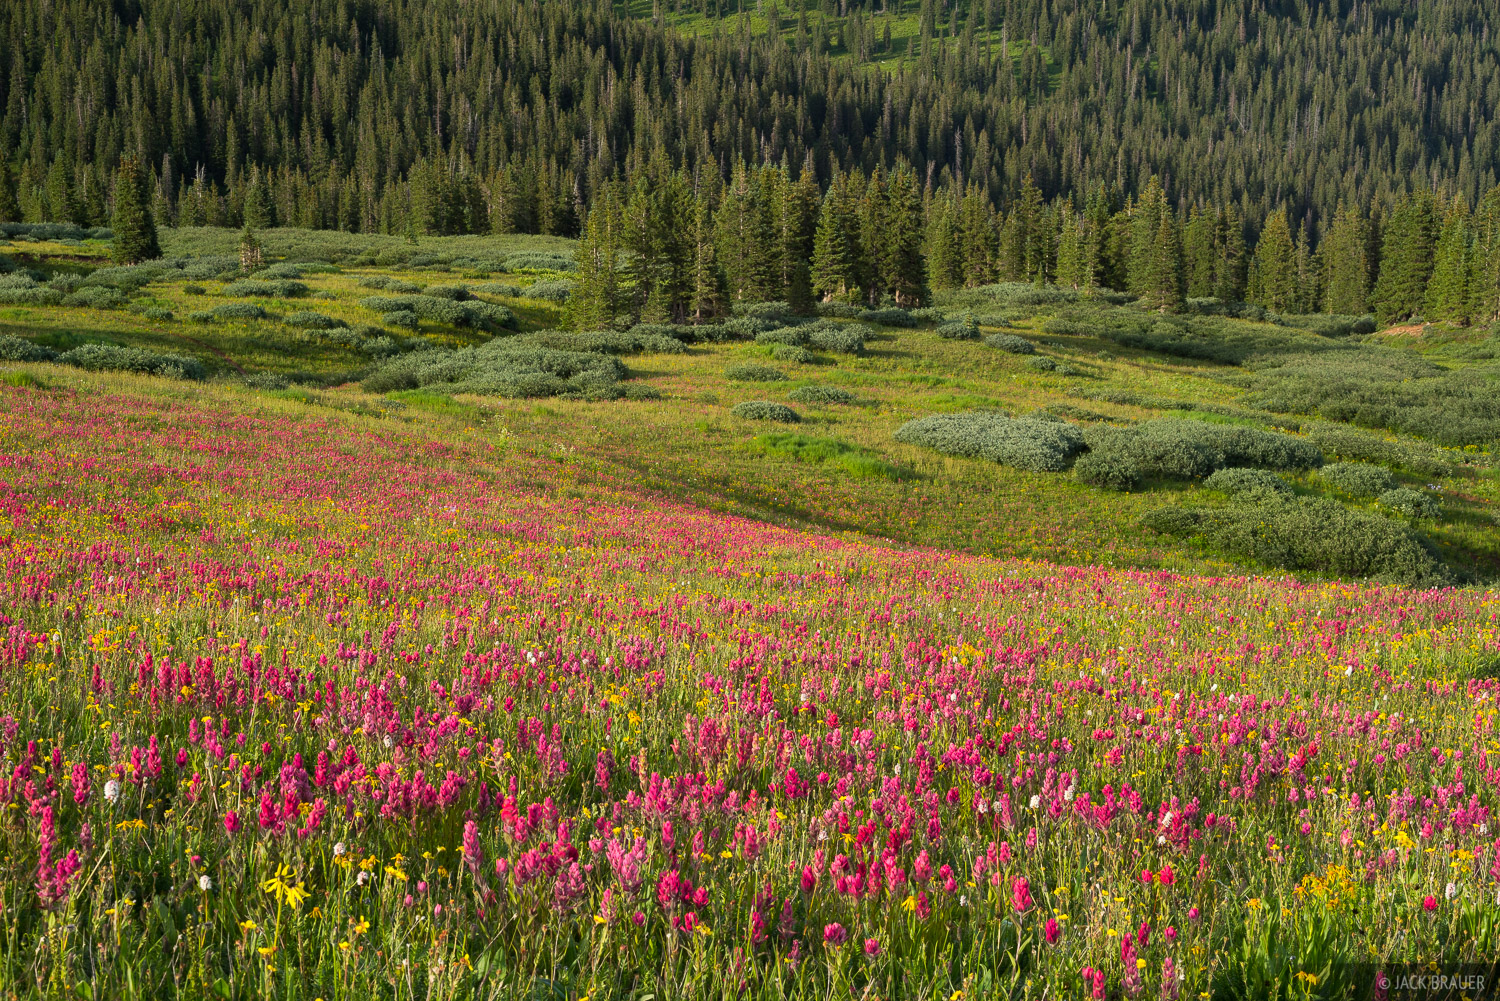 Colorado,San Juan Mountains,wildflowers, photo